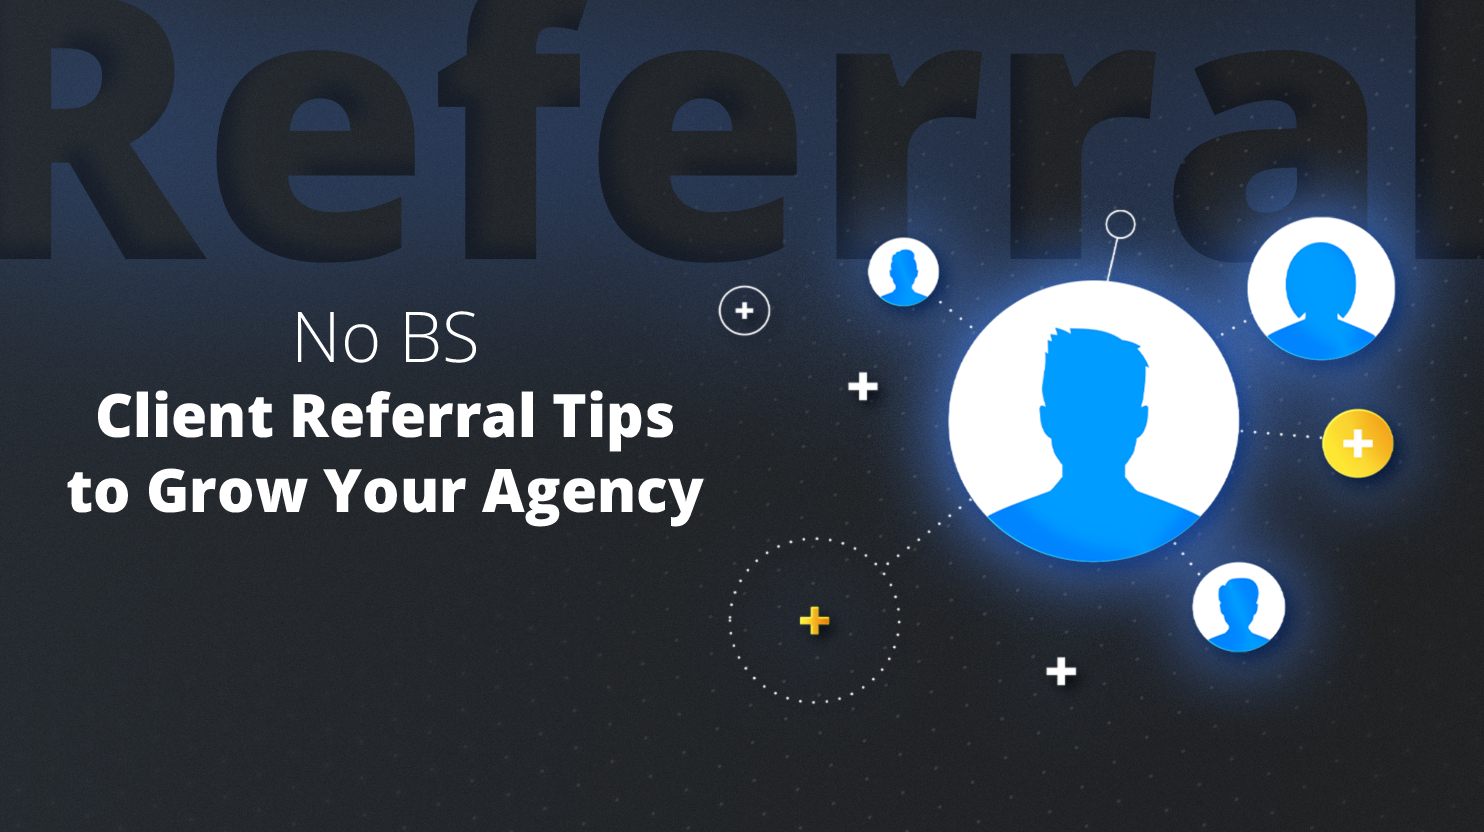 No BS Client Referral Tips to Grow Your Agency